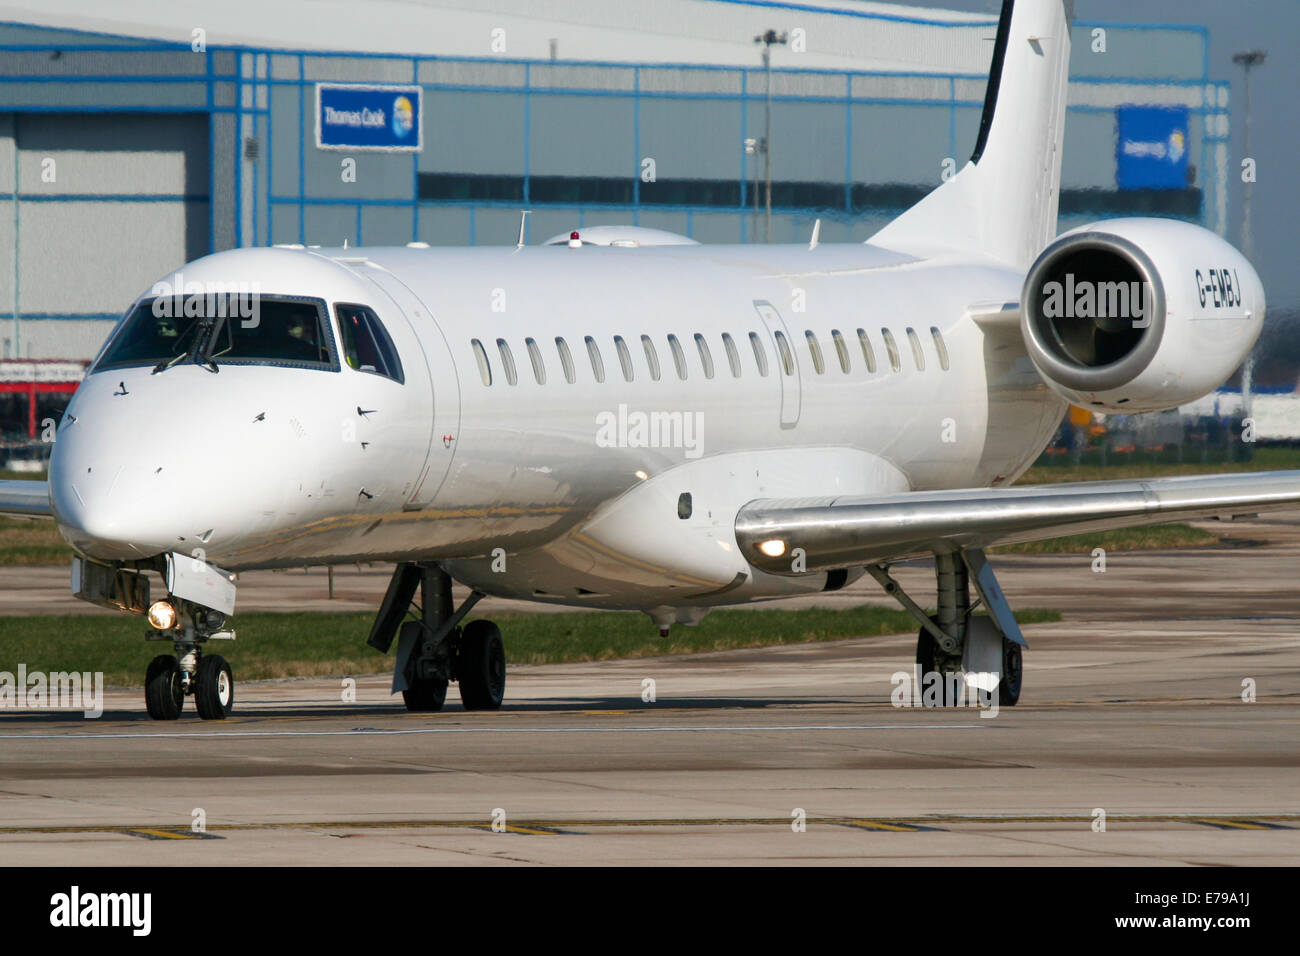 FlyBe Embraer 145 enters runway 23L at Manchester airport. - Stock Image